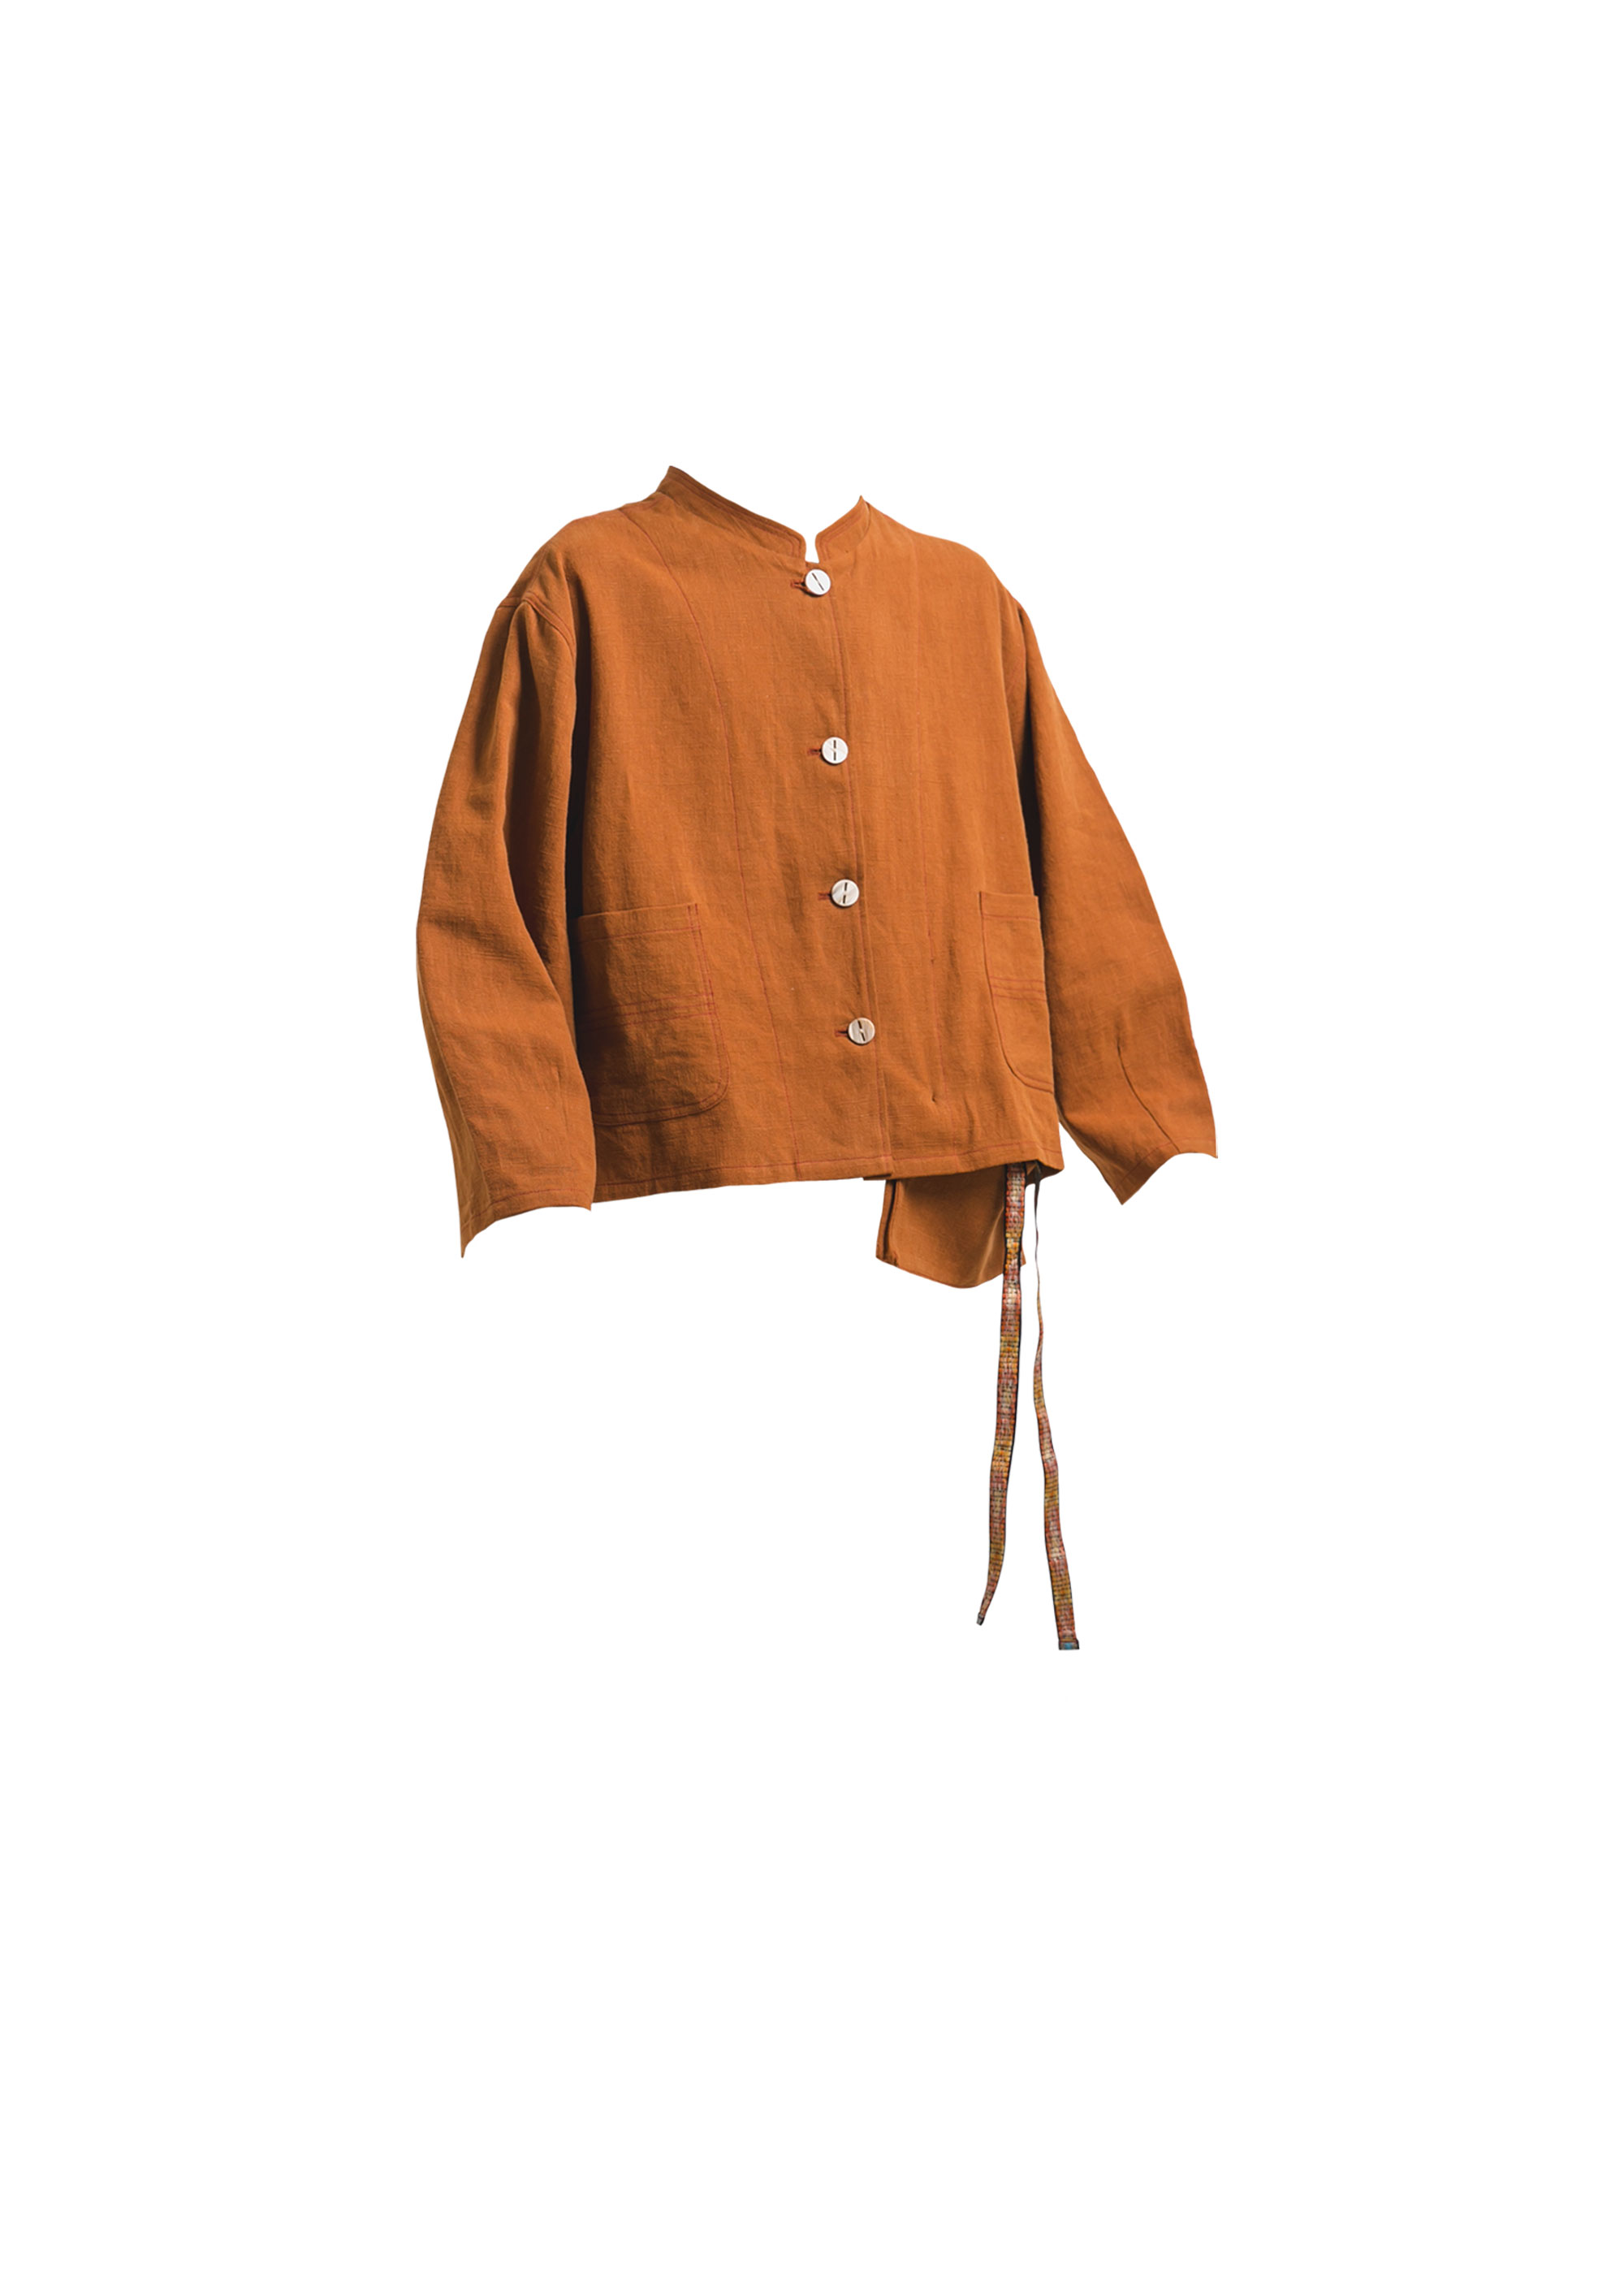 [AG] Linen Balloon Jacket - Brick